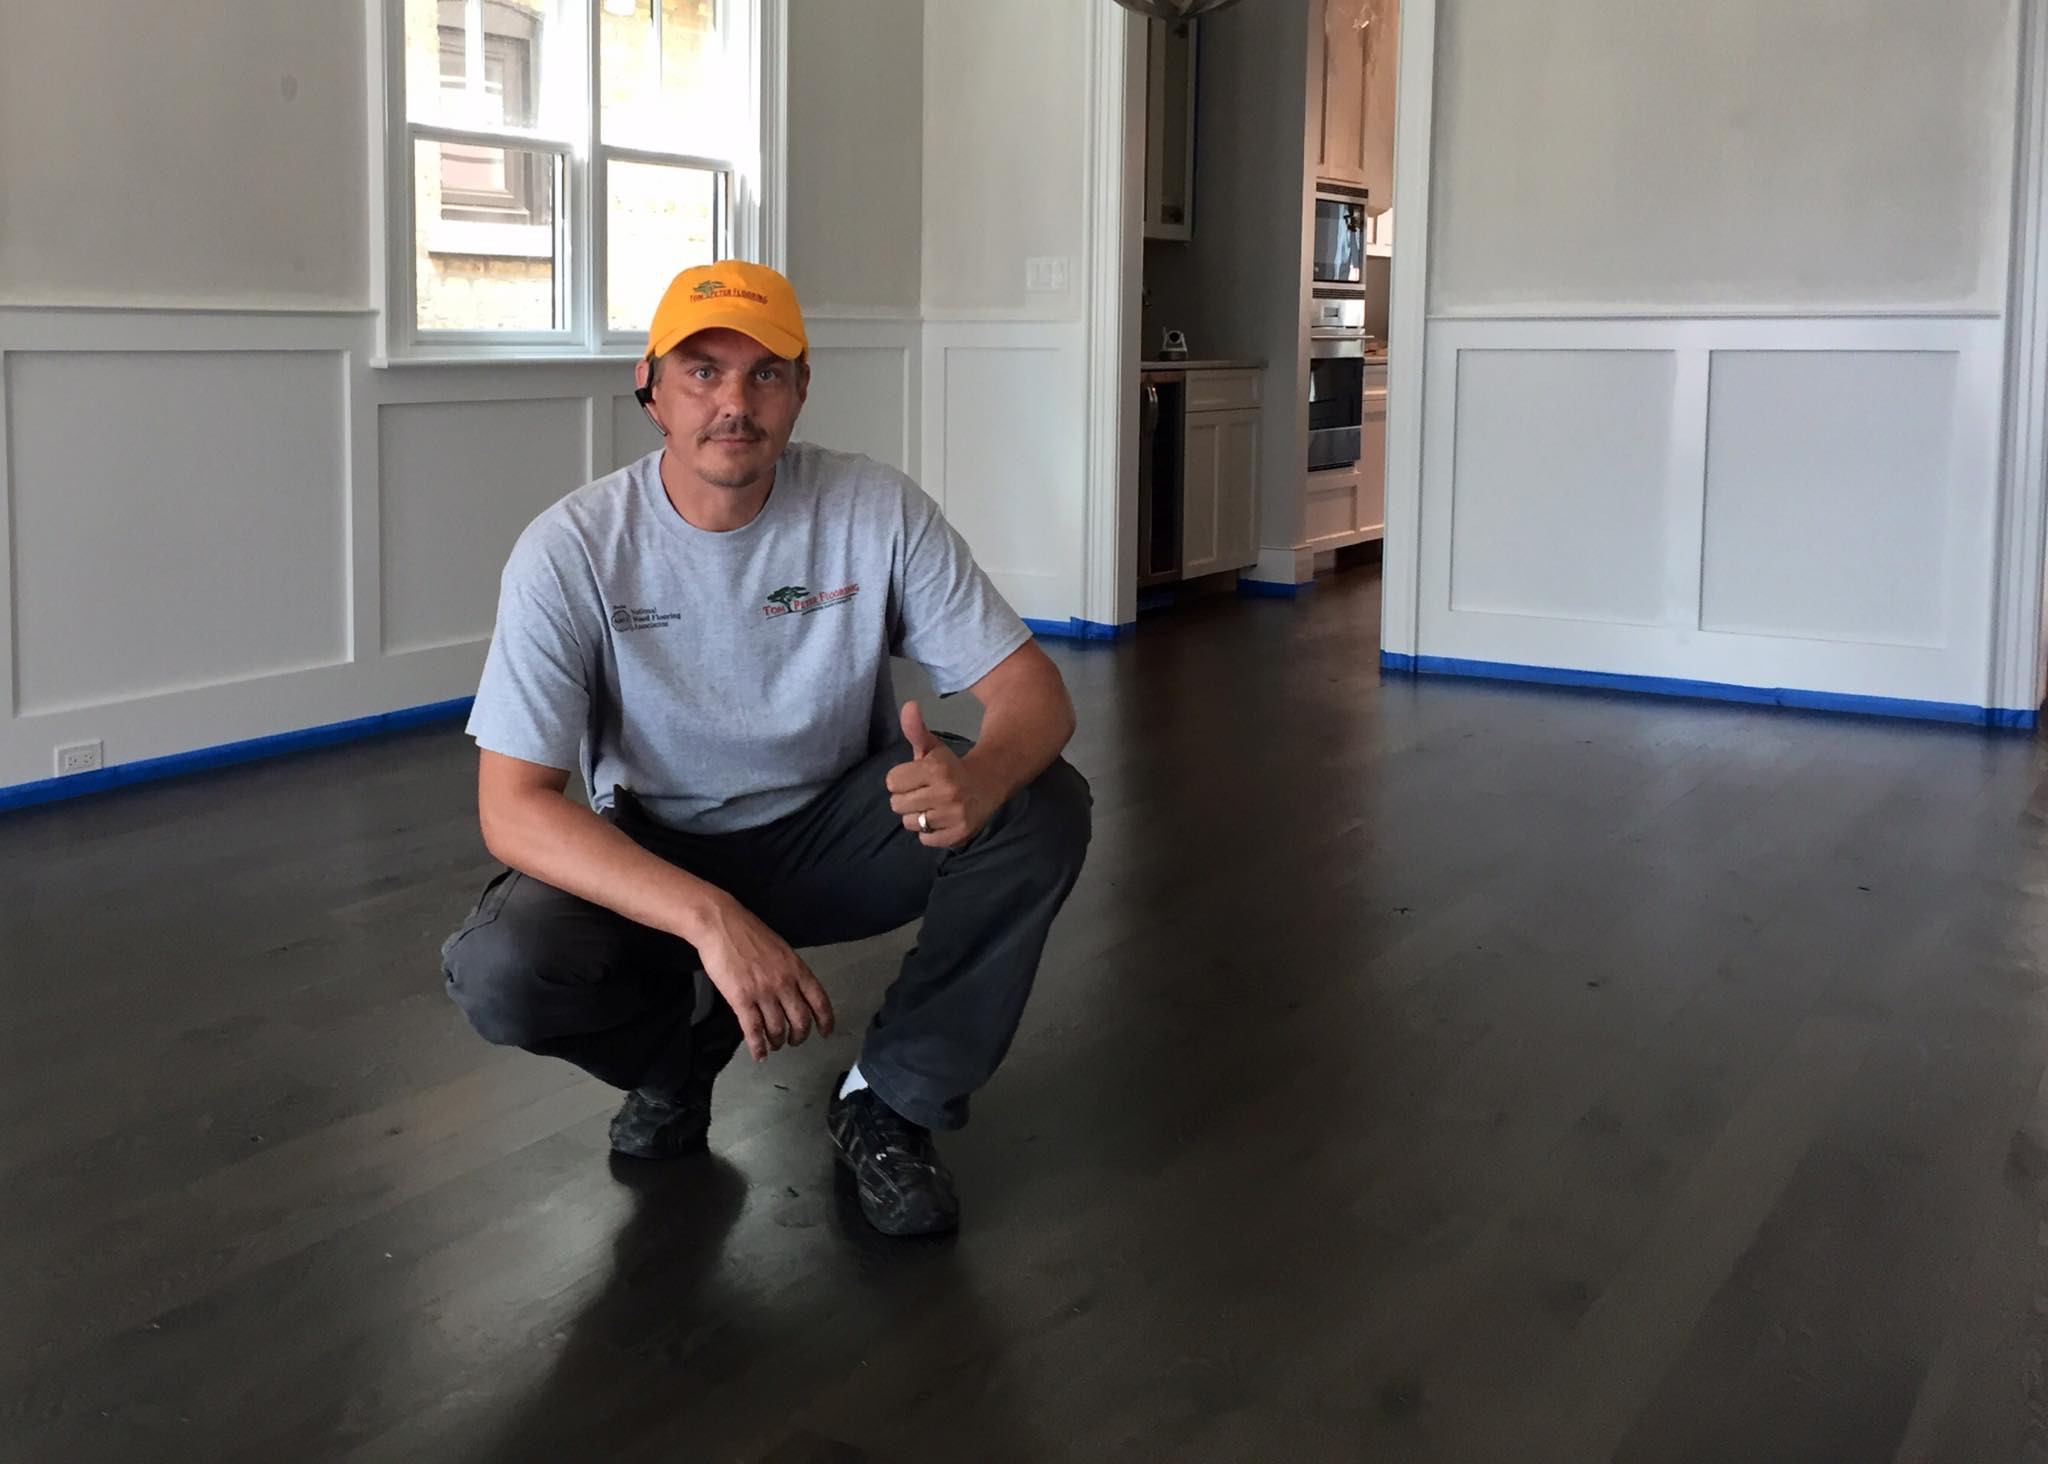 Hardwood Floor Refinishing Elmhurst Il Of tom Peter Flooring Hardwood Floor Refinishing Experts Chicago Pertaining to tom Peter Flooring is A Family Owned Business Celebrating Over 15 Years Of Helping Chicago Residents Discover the Beauty Of Natural Hardwood Floors